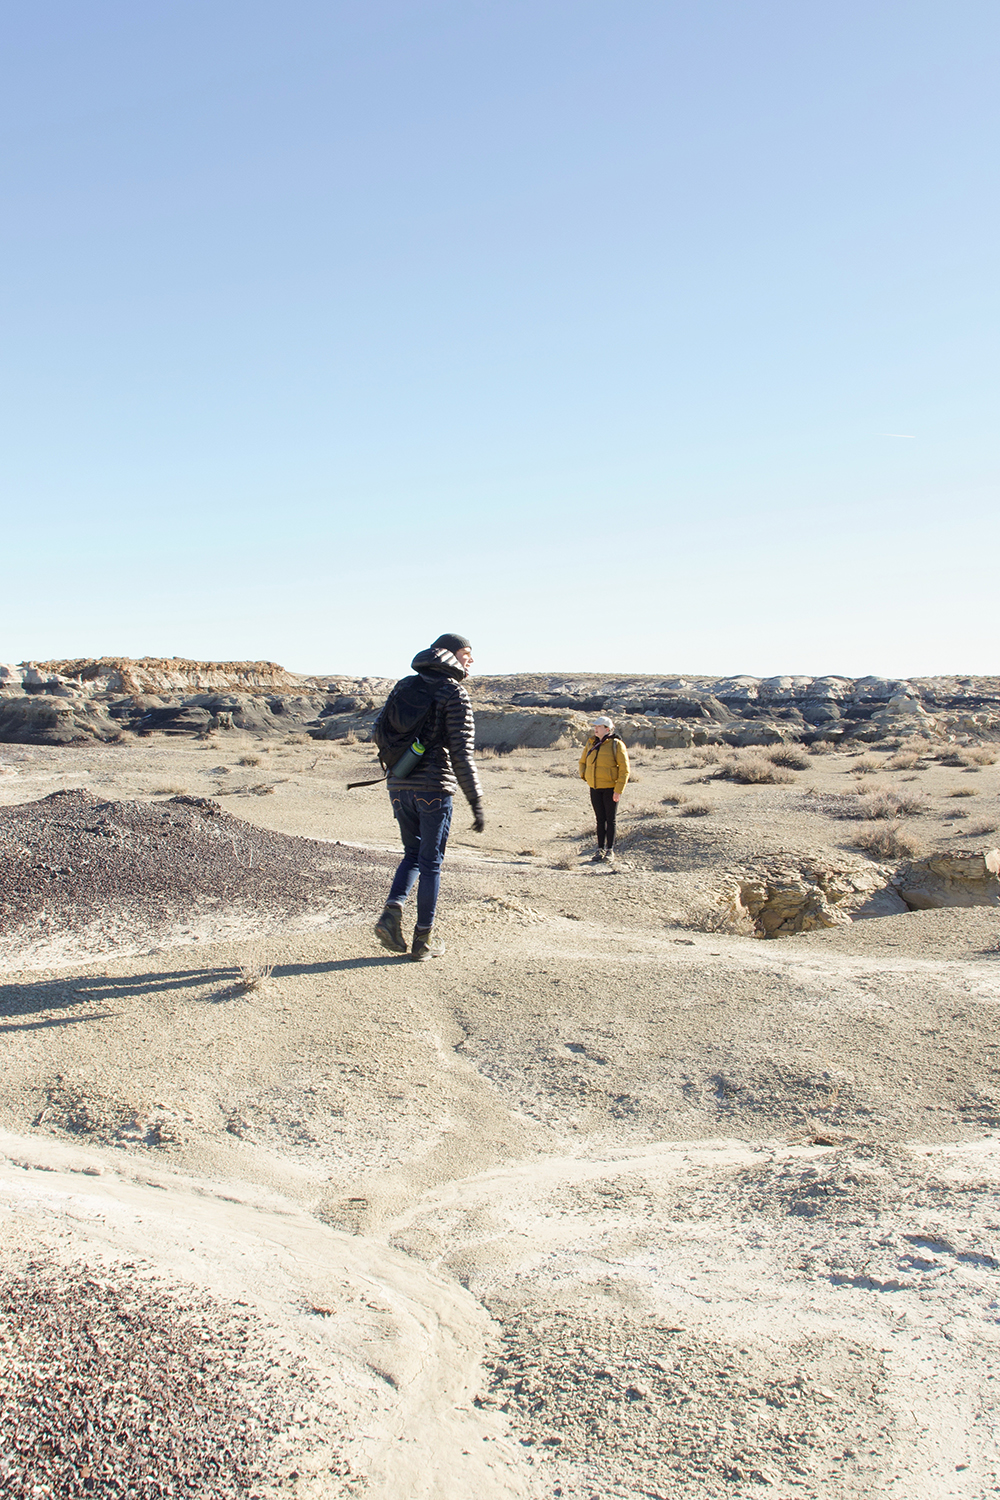 Into the Bisti De-Na-Zin Wilderness Area